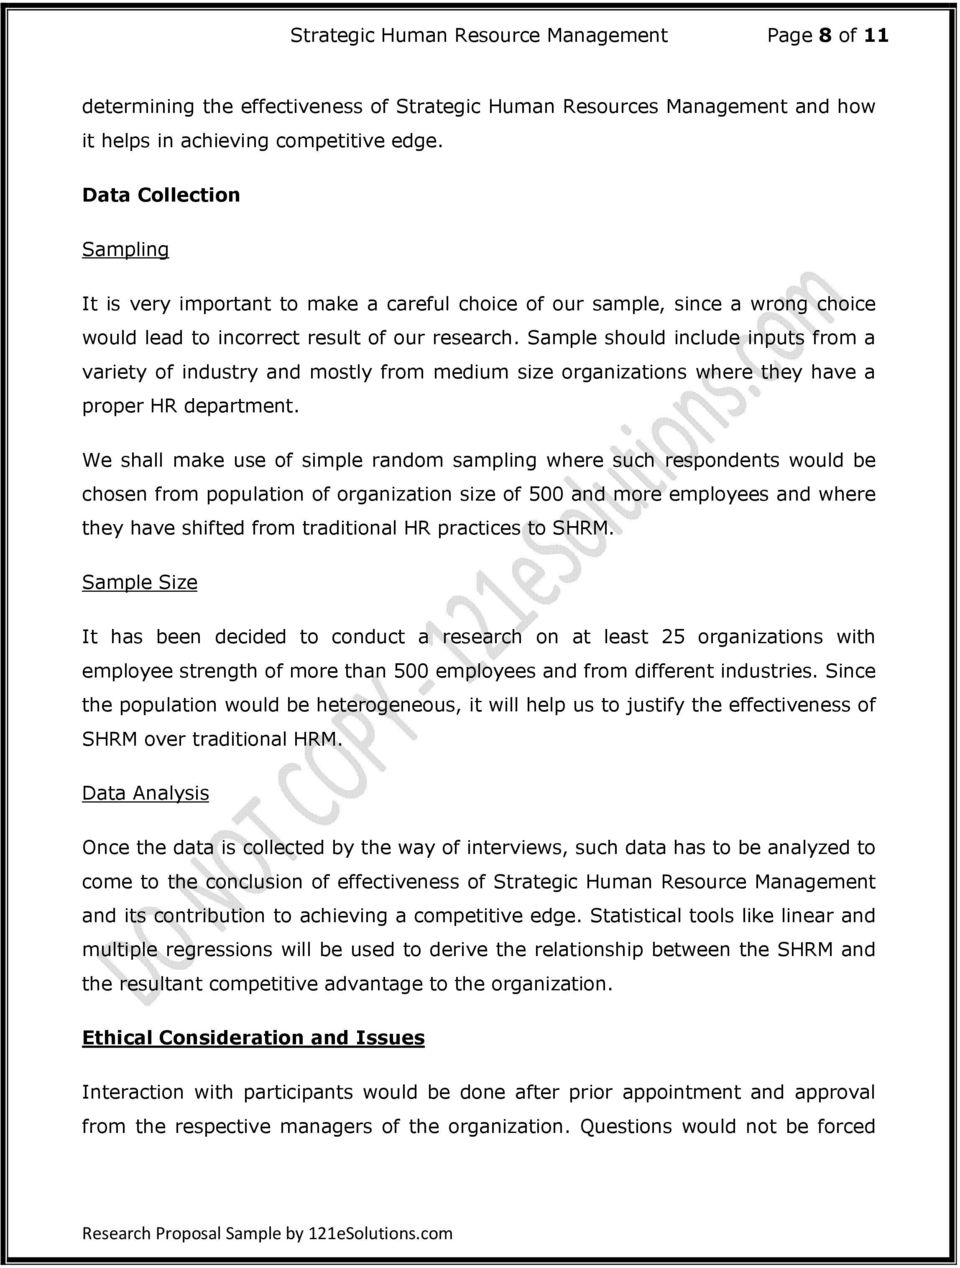 013 Action Research Proposal Paper Examples Page 8 Breathtaking Sample Papers Full